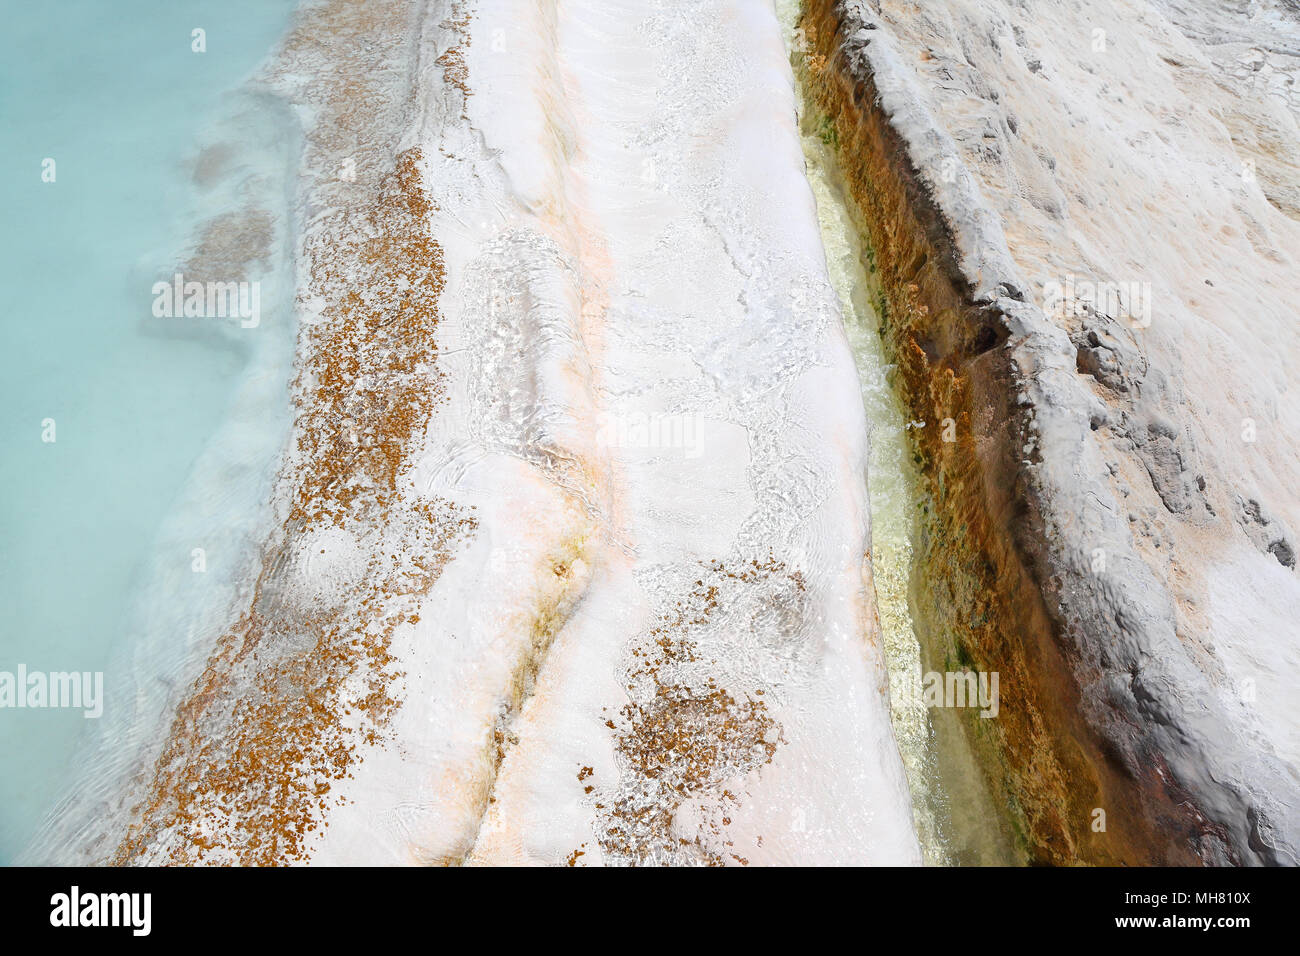 Pamukkale: Natural thermal springs, Turkey - Stock Image